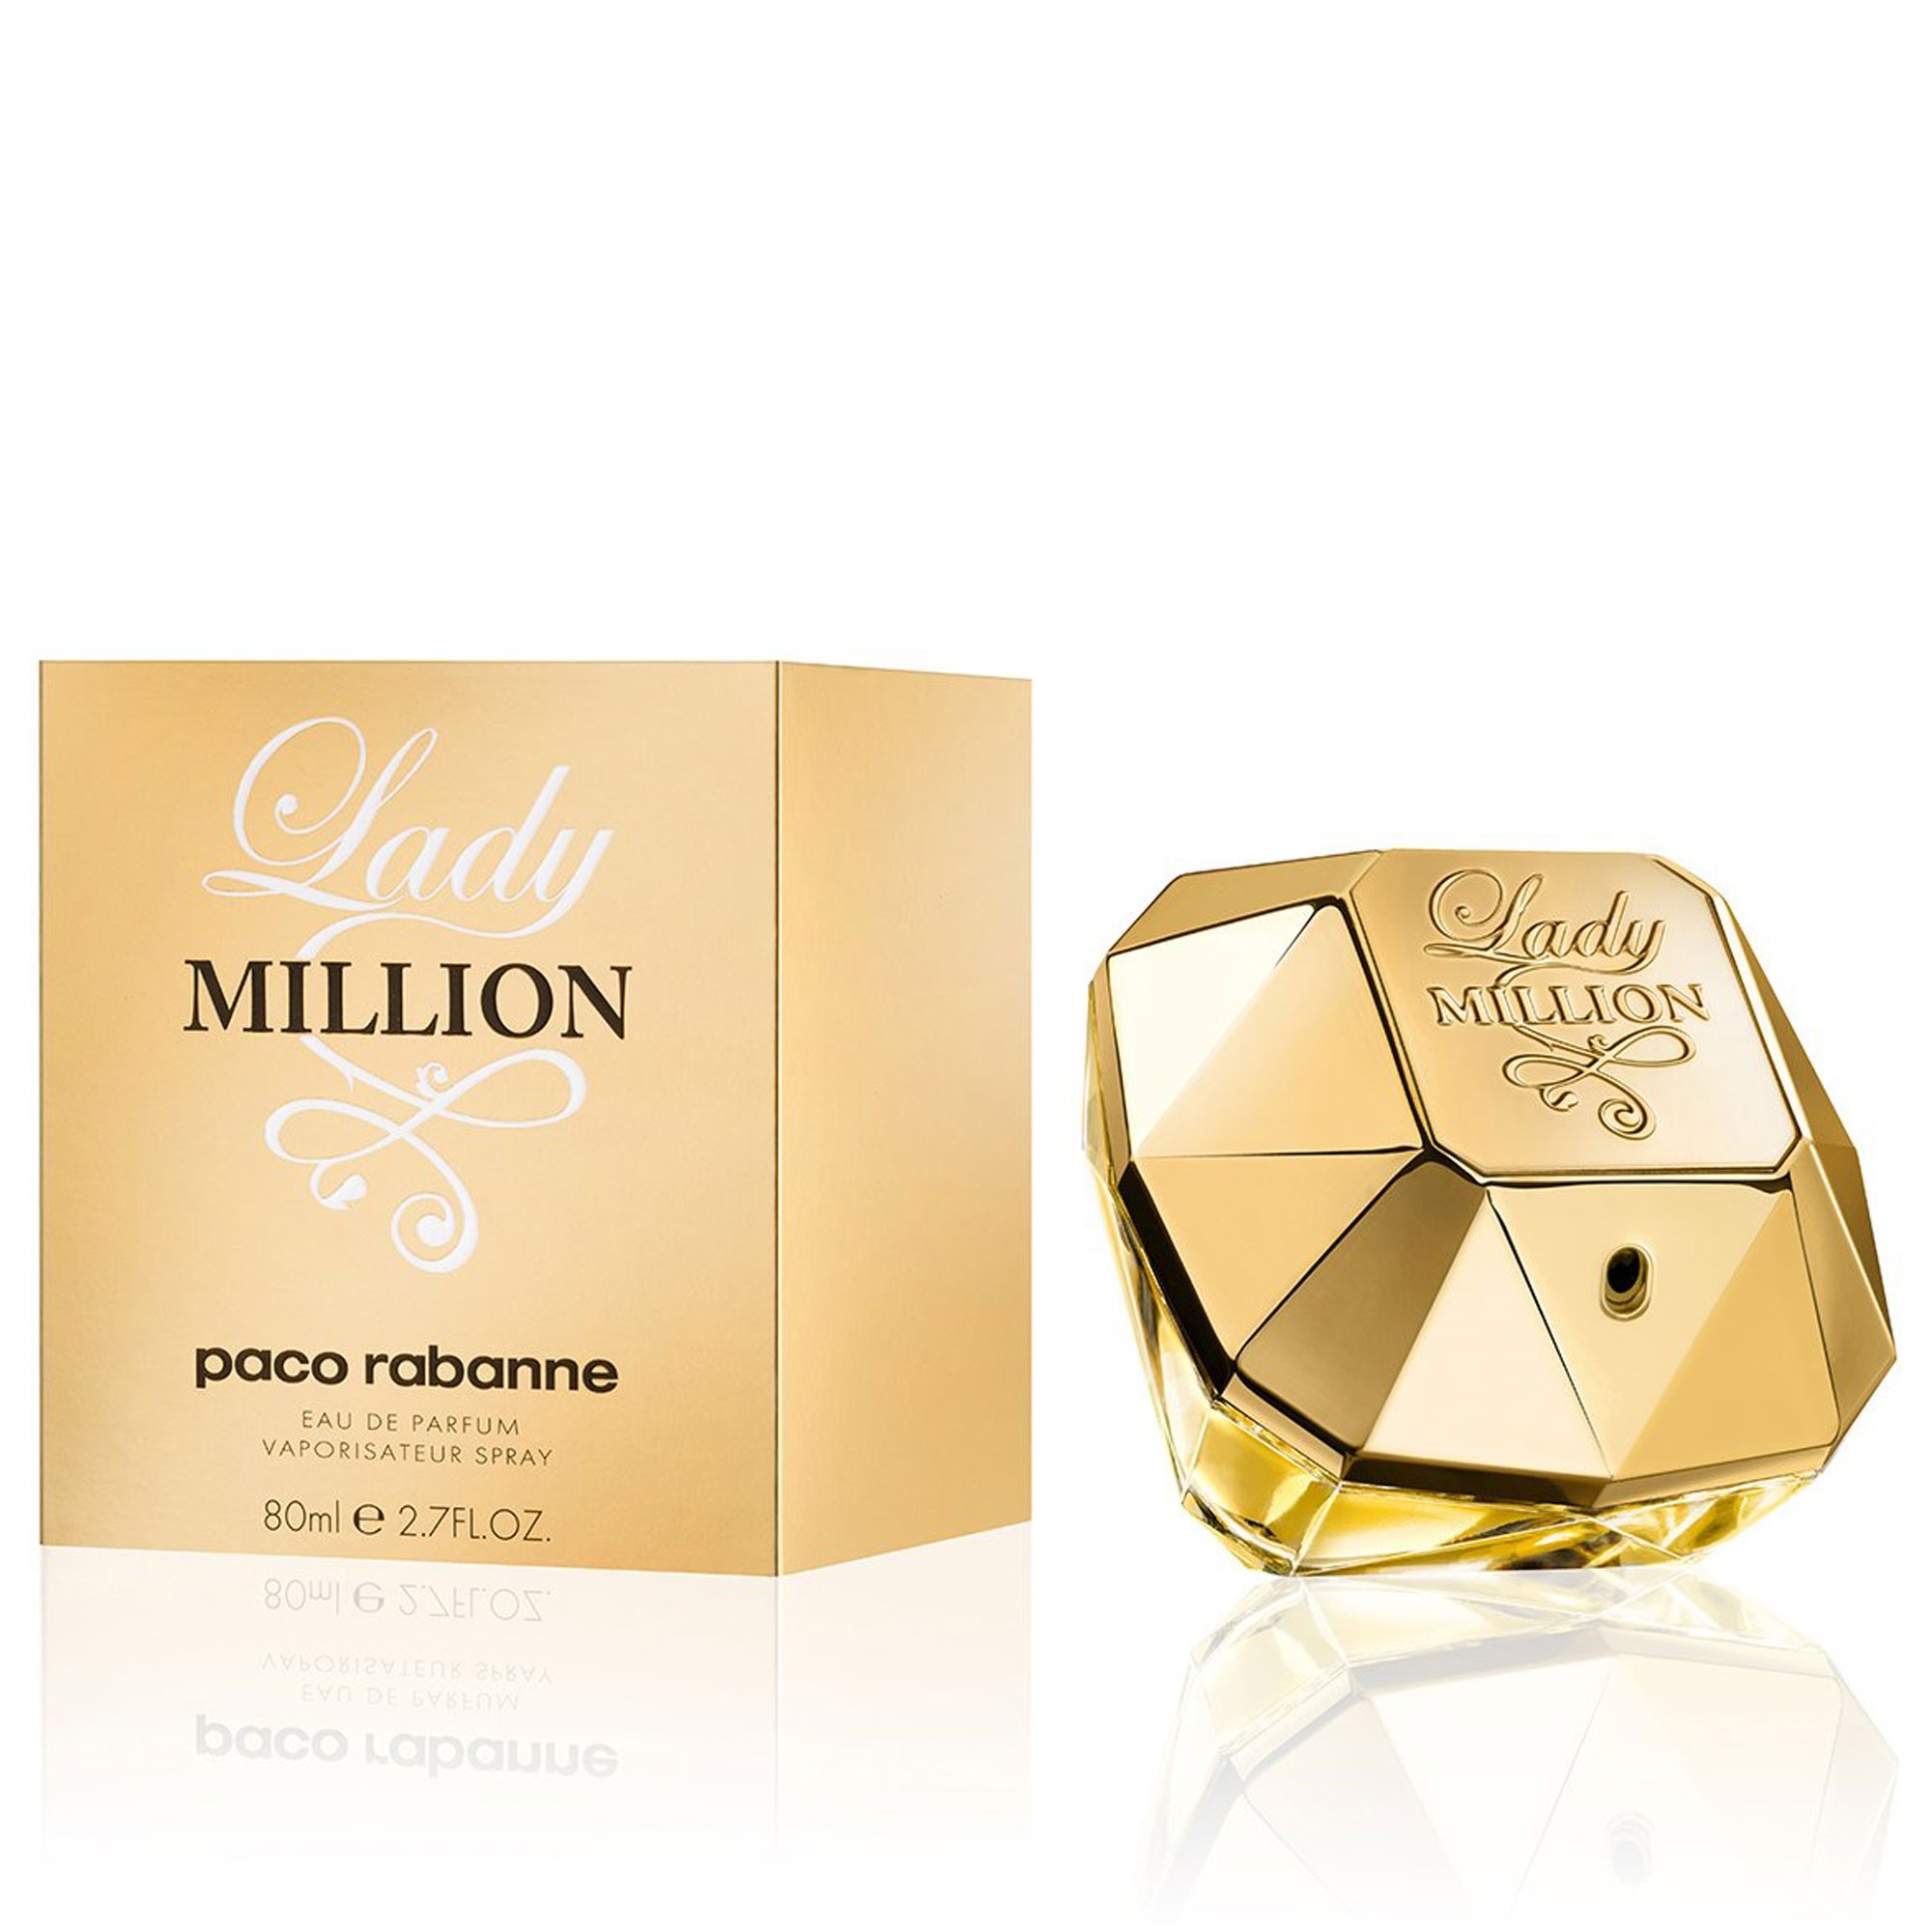 Perfume Lady Millon 80ml.